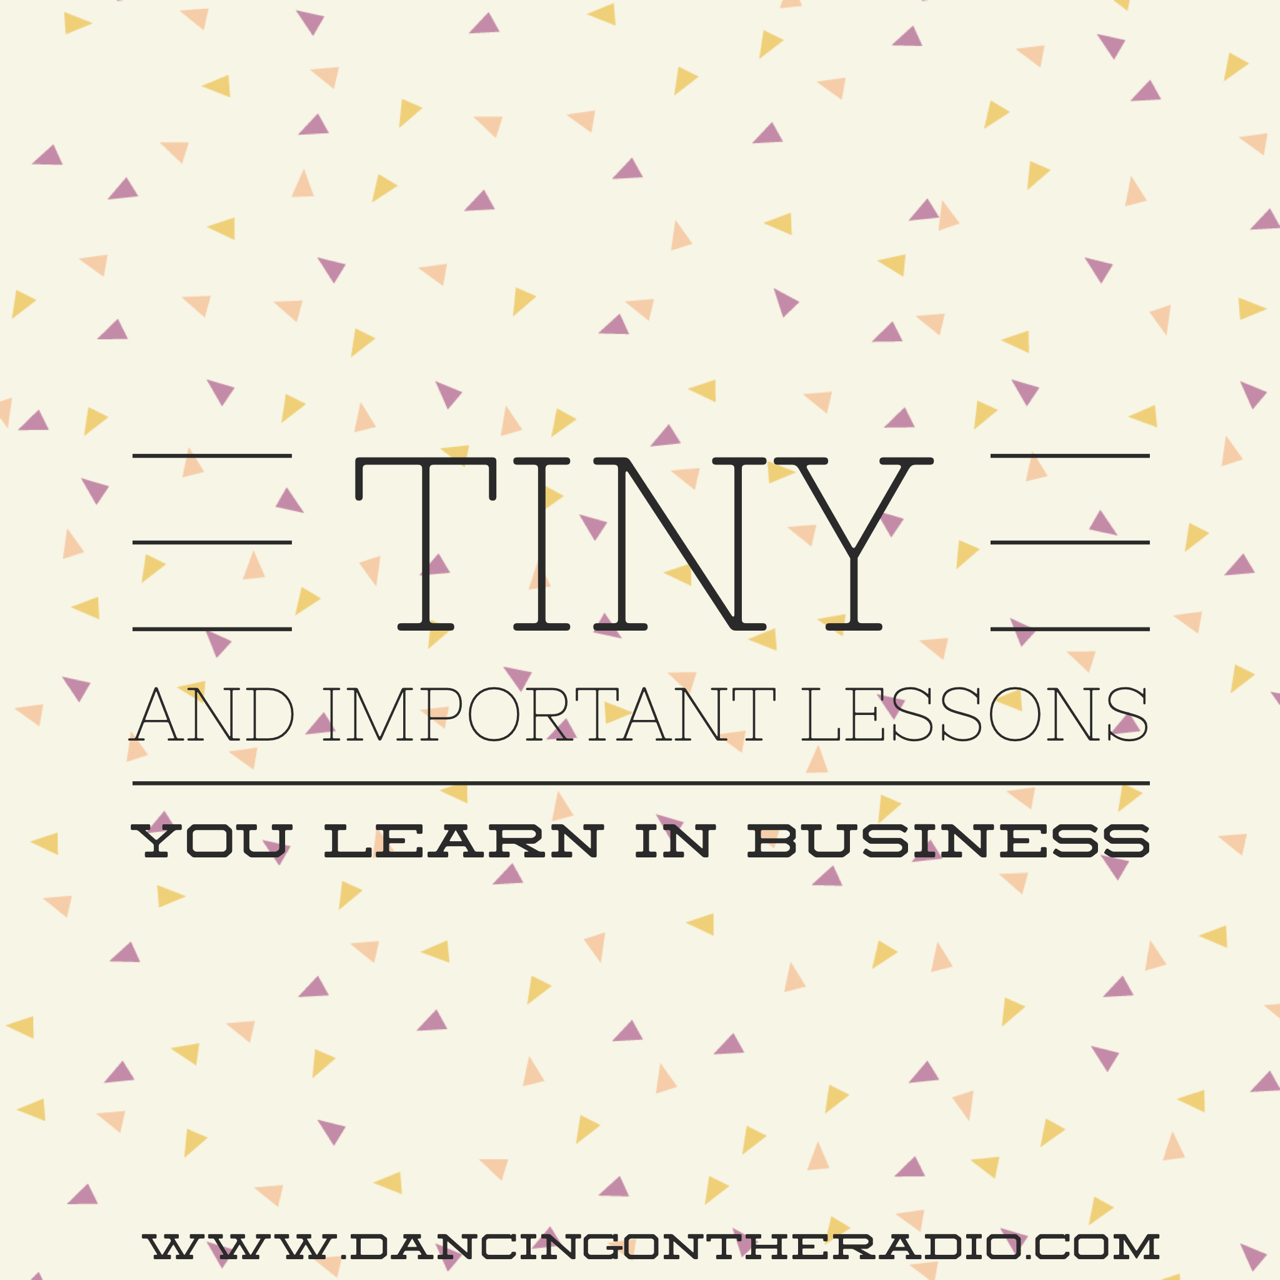 quote, important lessons you learn in business, business megg.me